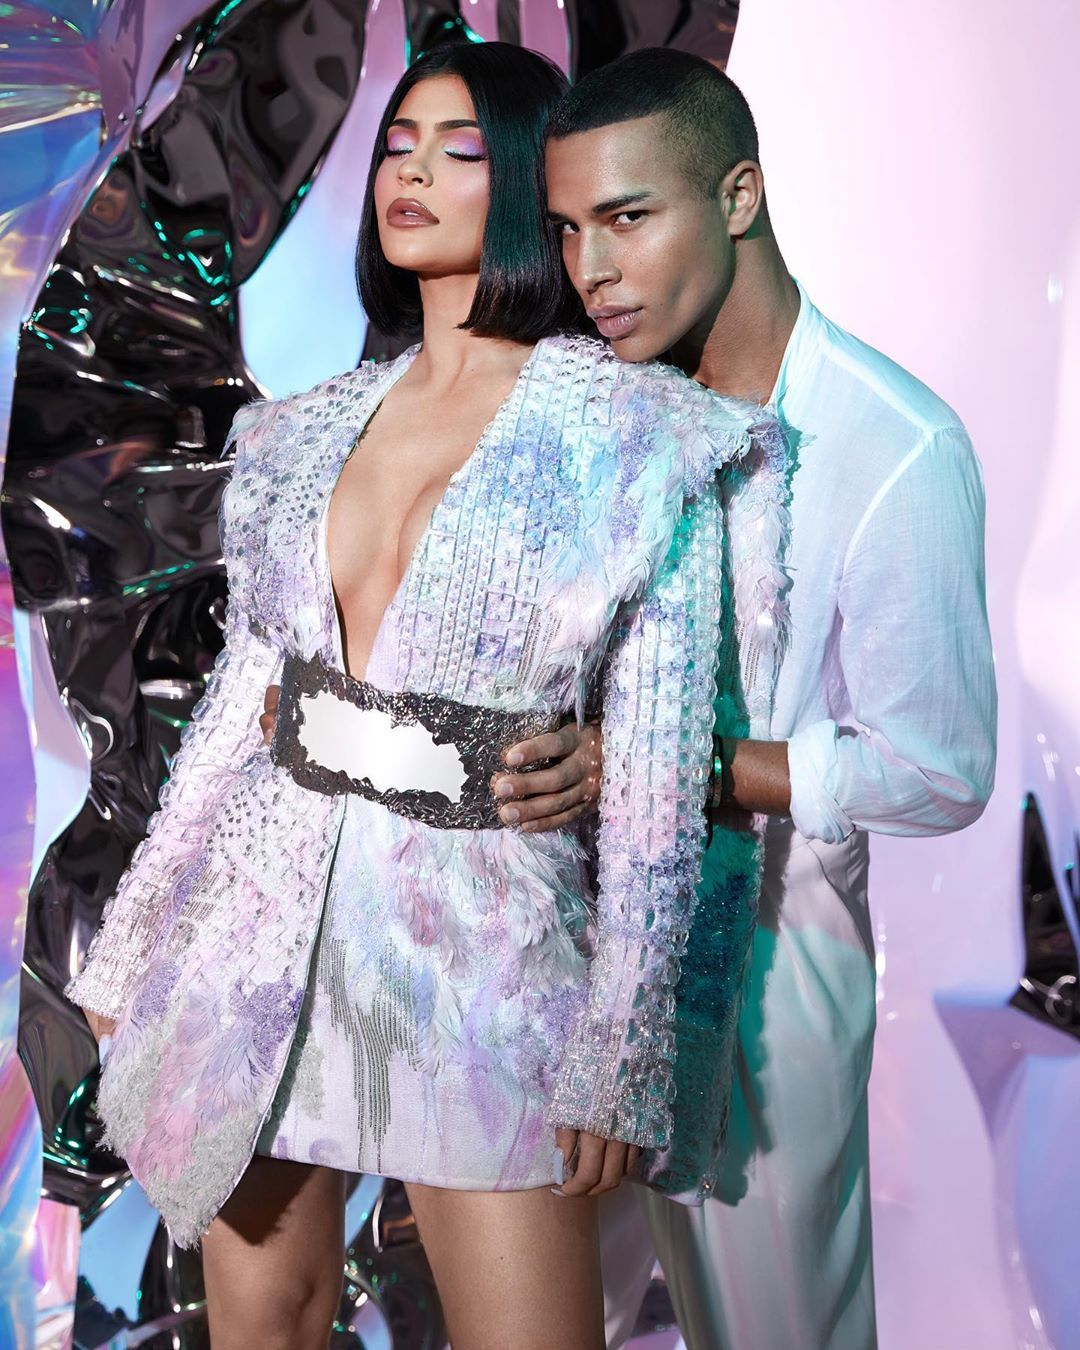 Kylie Jenner's Makeup Collaboration With Balmain Will Debut at Paris Fashion Week